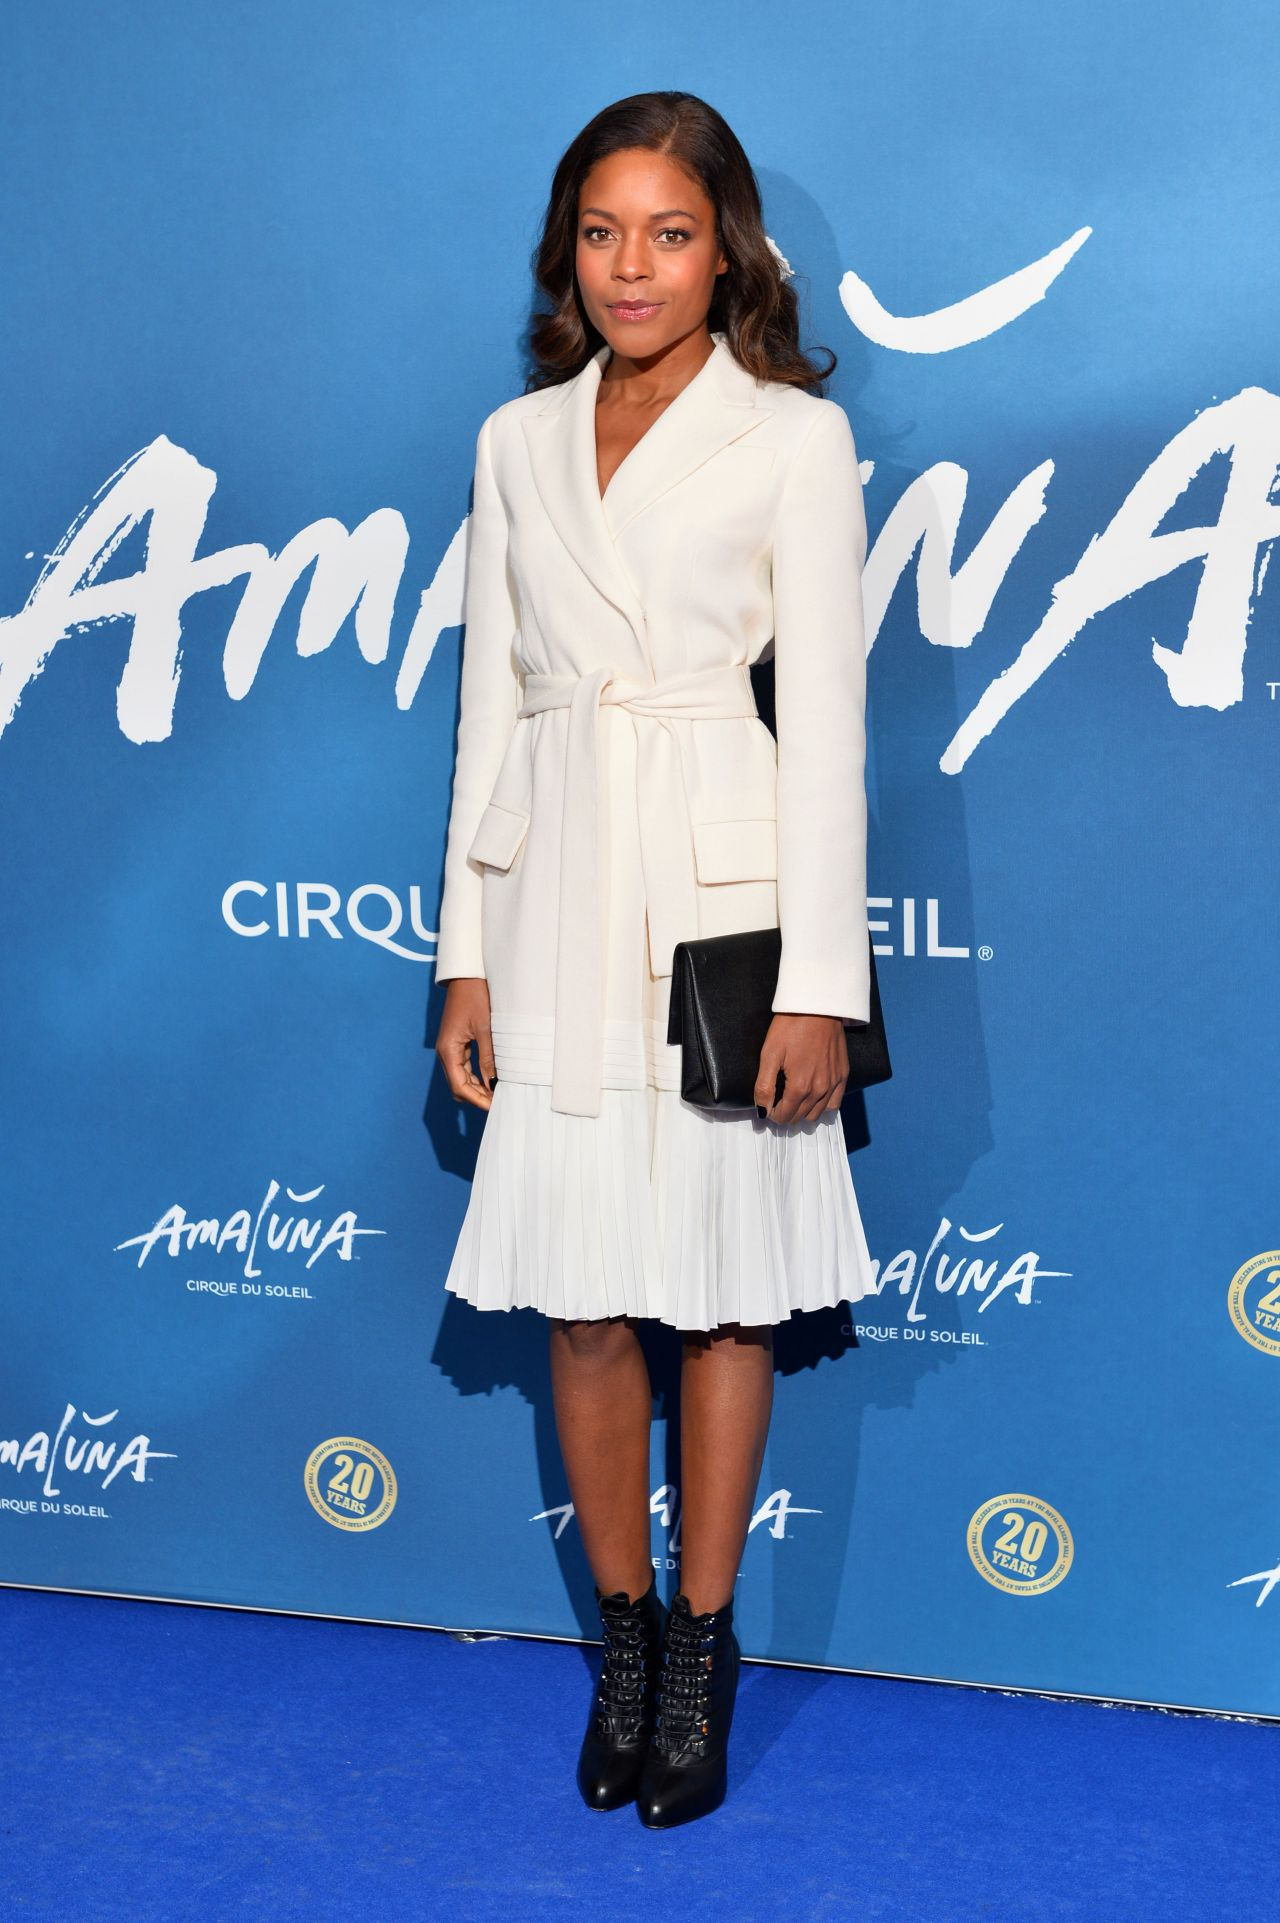 naomie-harris-cirque-du-soleil-amaluna-premiere-in-london-january-2016-6